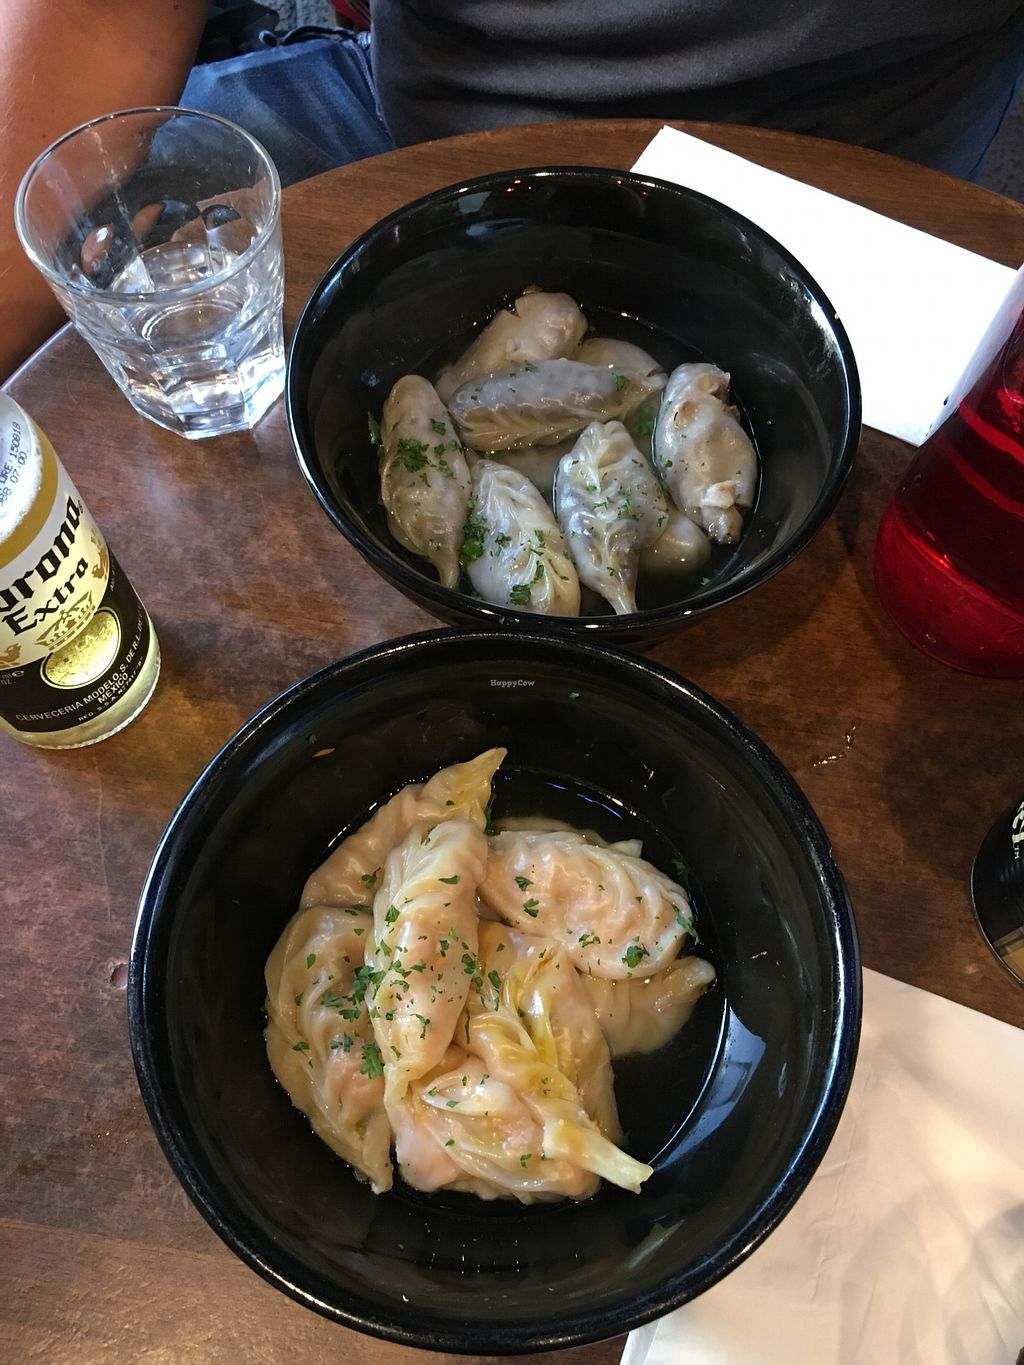 """Photo of Momo Bar  by <a href=""""/members/profile/SeitanSeitanSeitan"""">SeitanSeitanSeitan</a> <br/>Veggie and lentil momos.  <br/> December 9, 2017  - <a href='/contact/abuse/image/106894/334002'>Report</a>"""